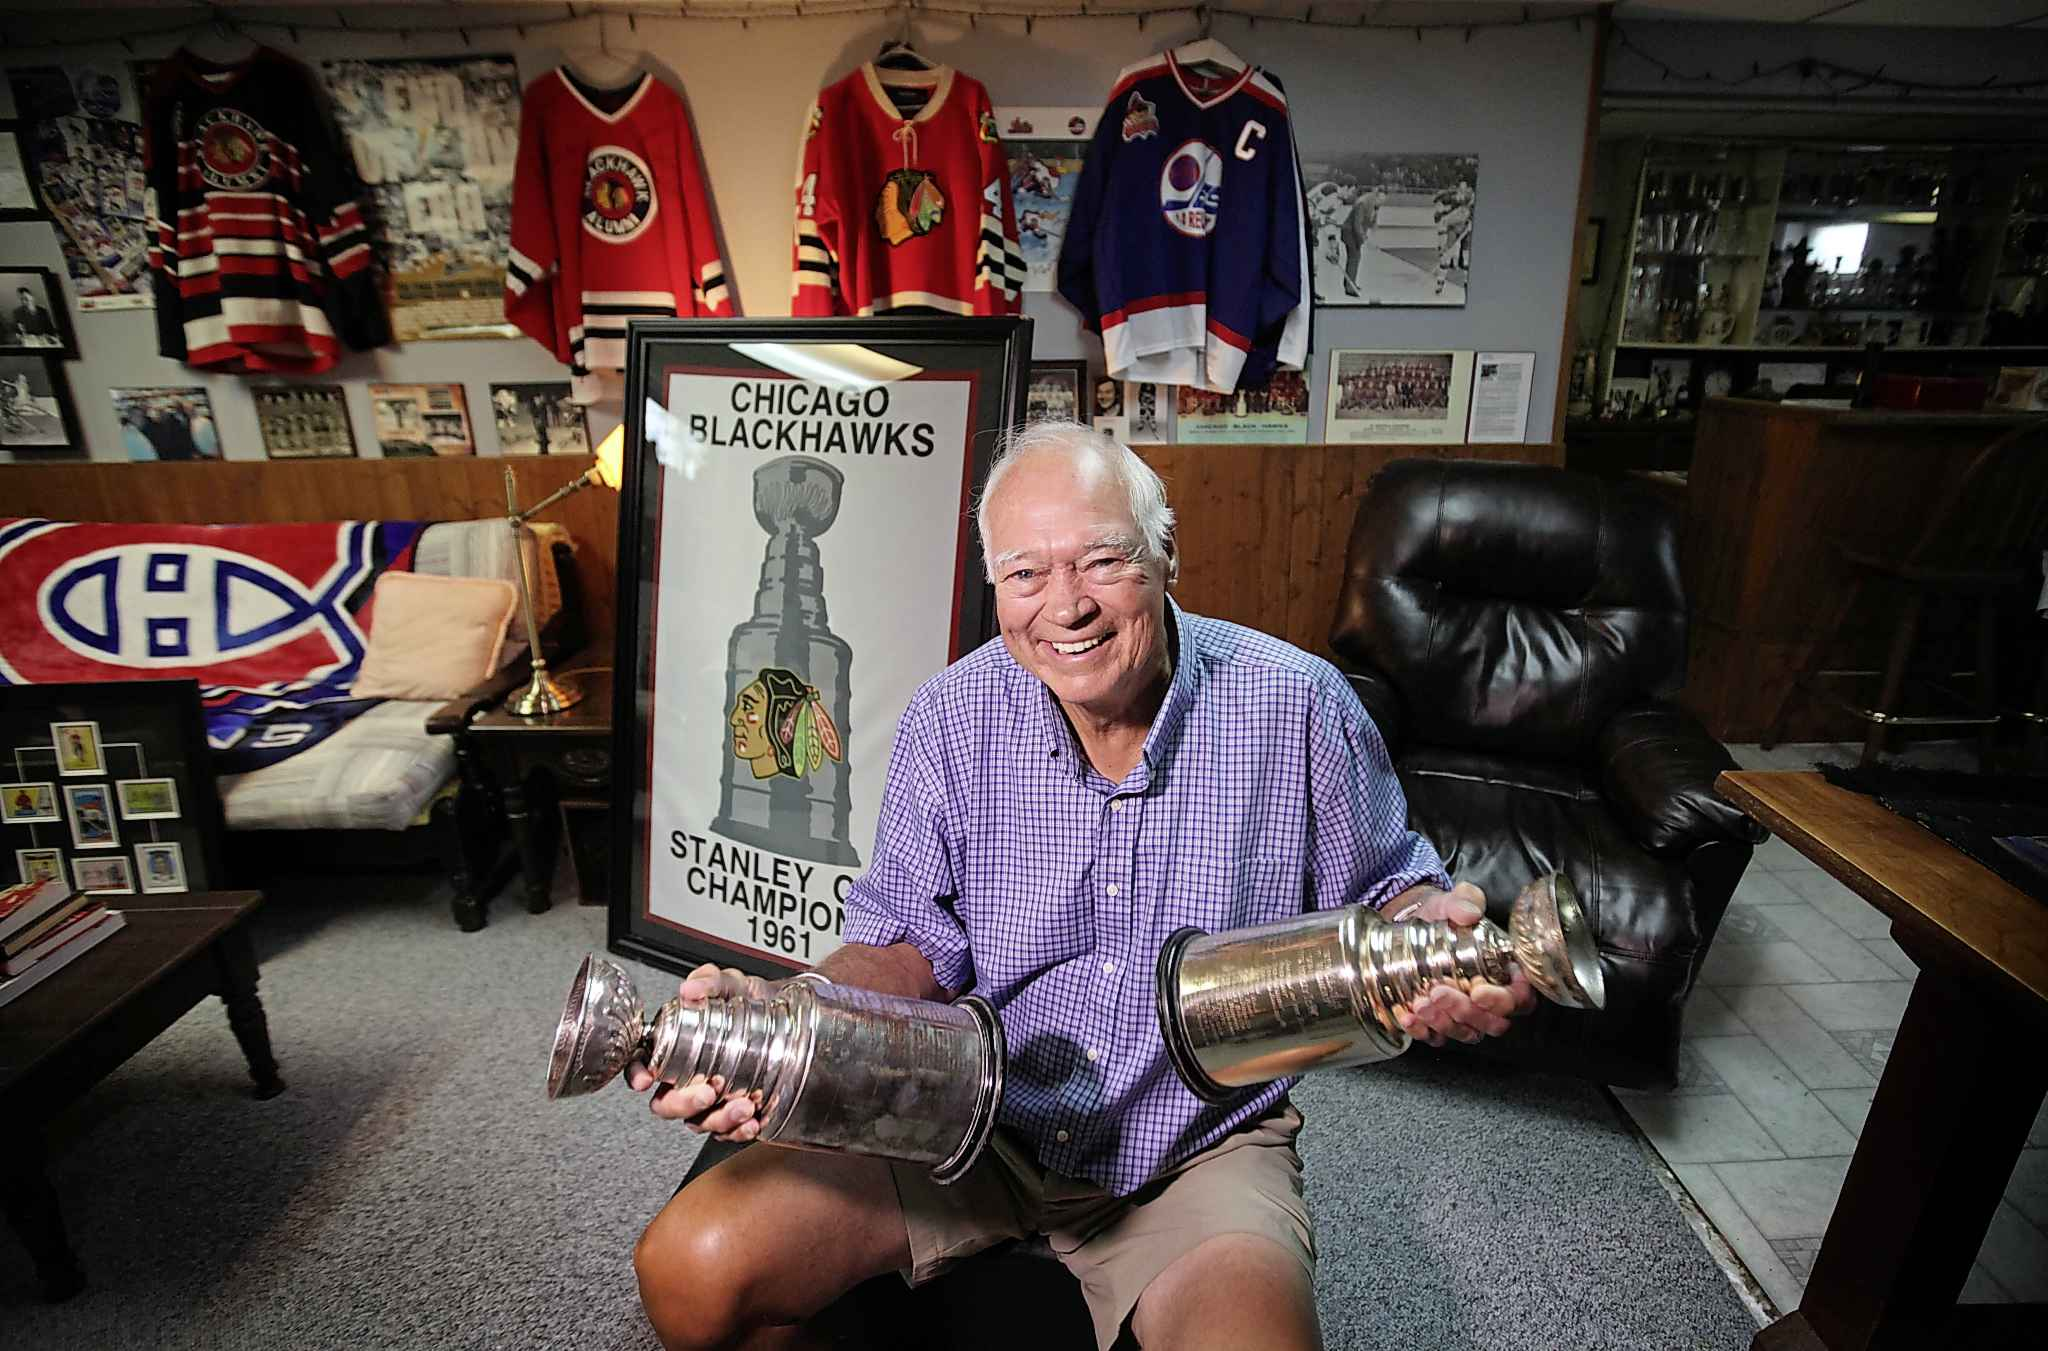 Ab McDonald in his basement with his memorabilia including two replica Stanley Cups from the 1960 Montreal Canadiens and the 1961 Chicago Blackhawks. Ab has been on four Stanley Cup-winning teams, three in Montreal and one in Chicago. He was raised in Winnipeg and was the first-ever captain of the original Winnipeg Jets.